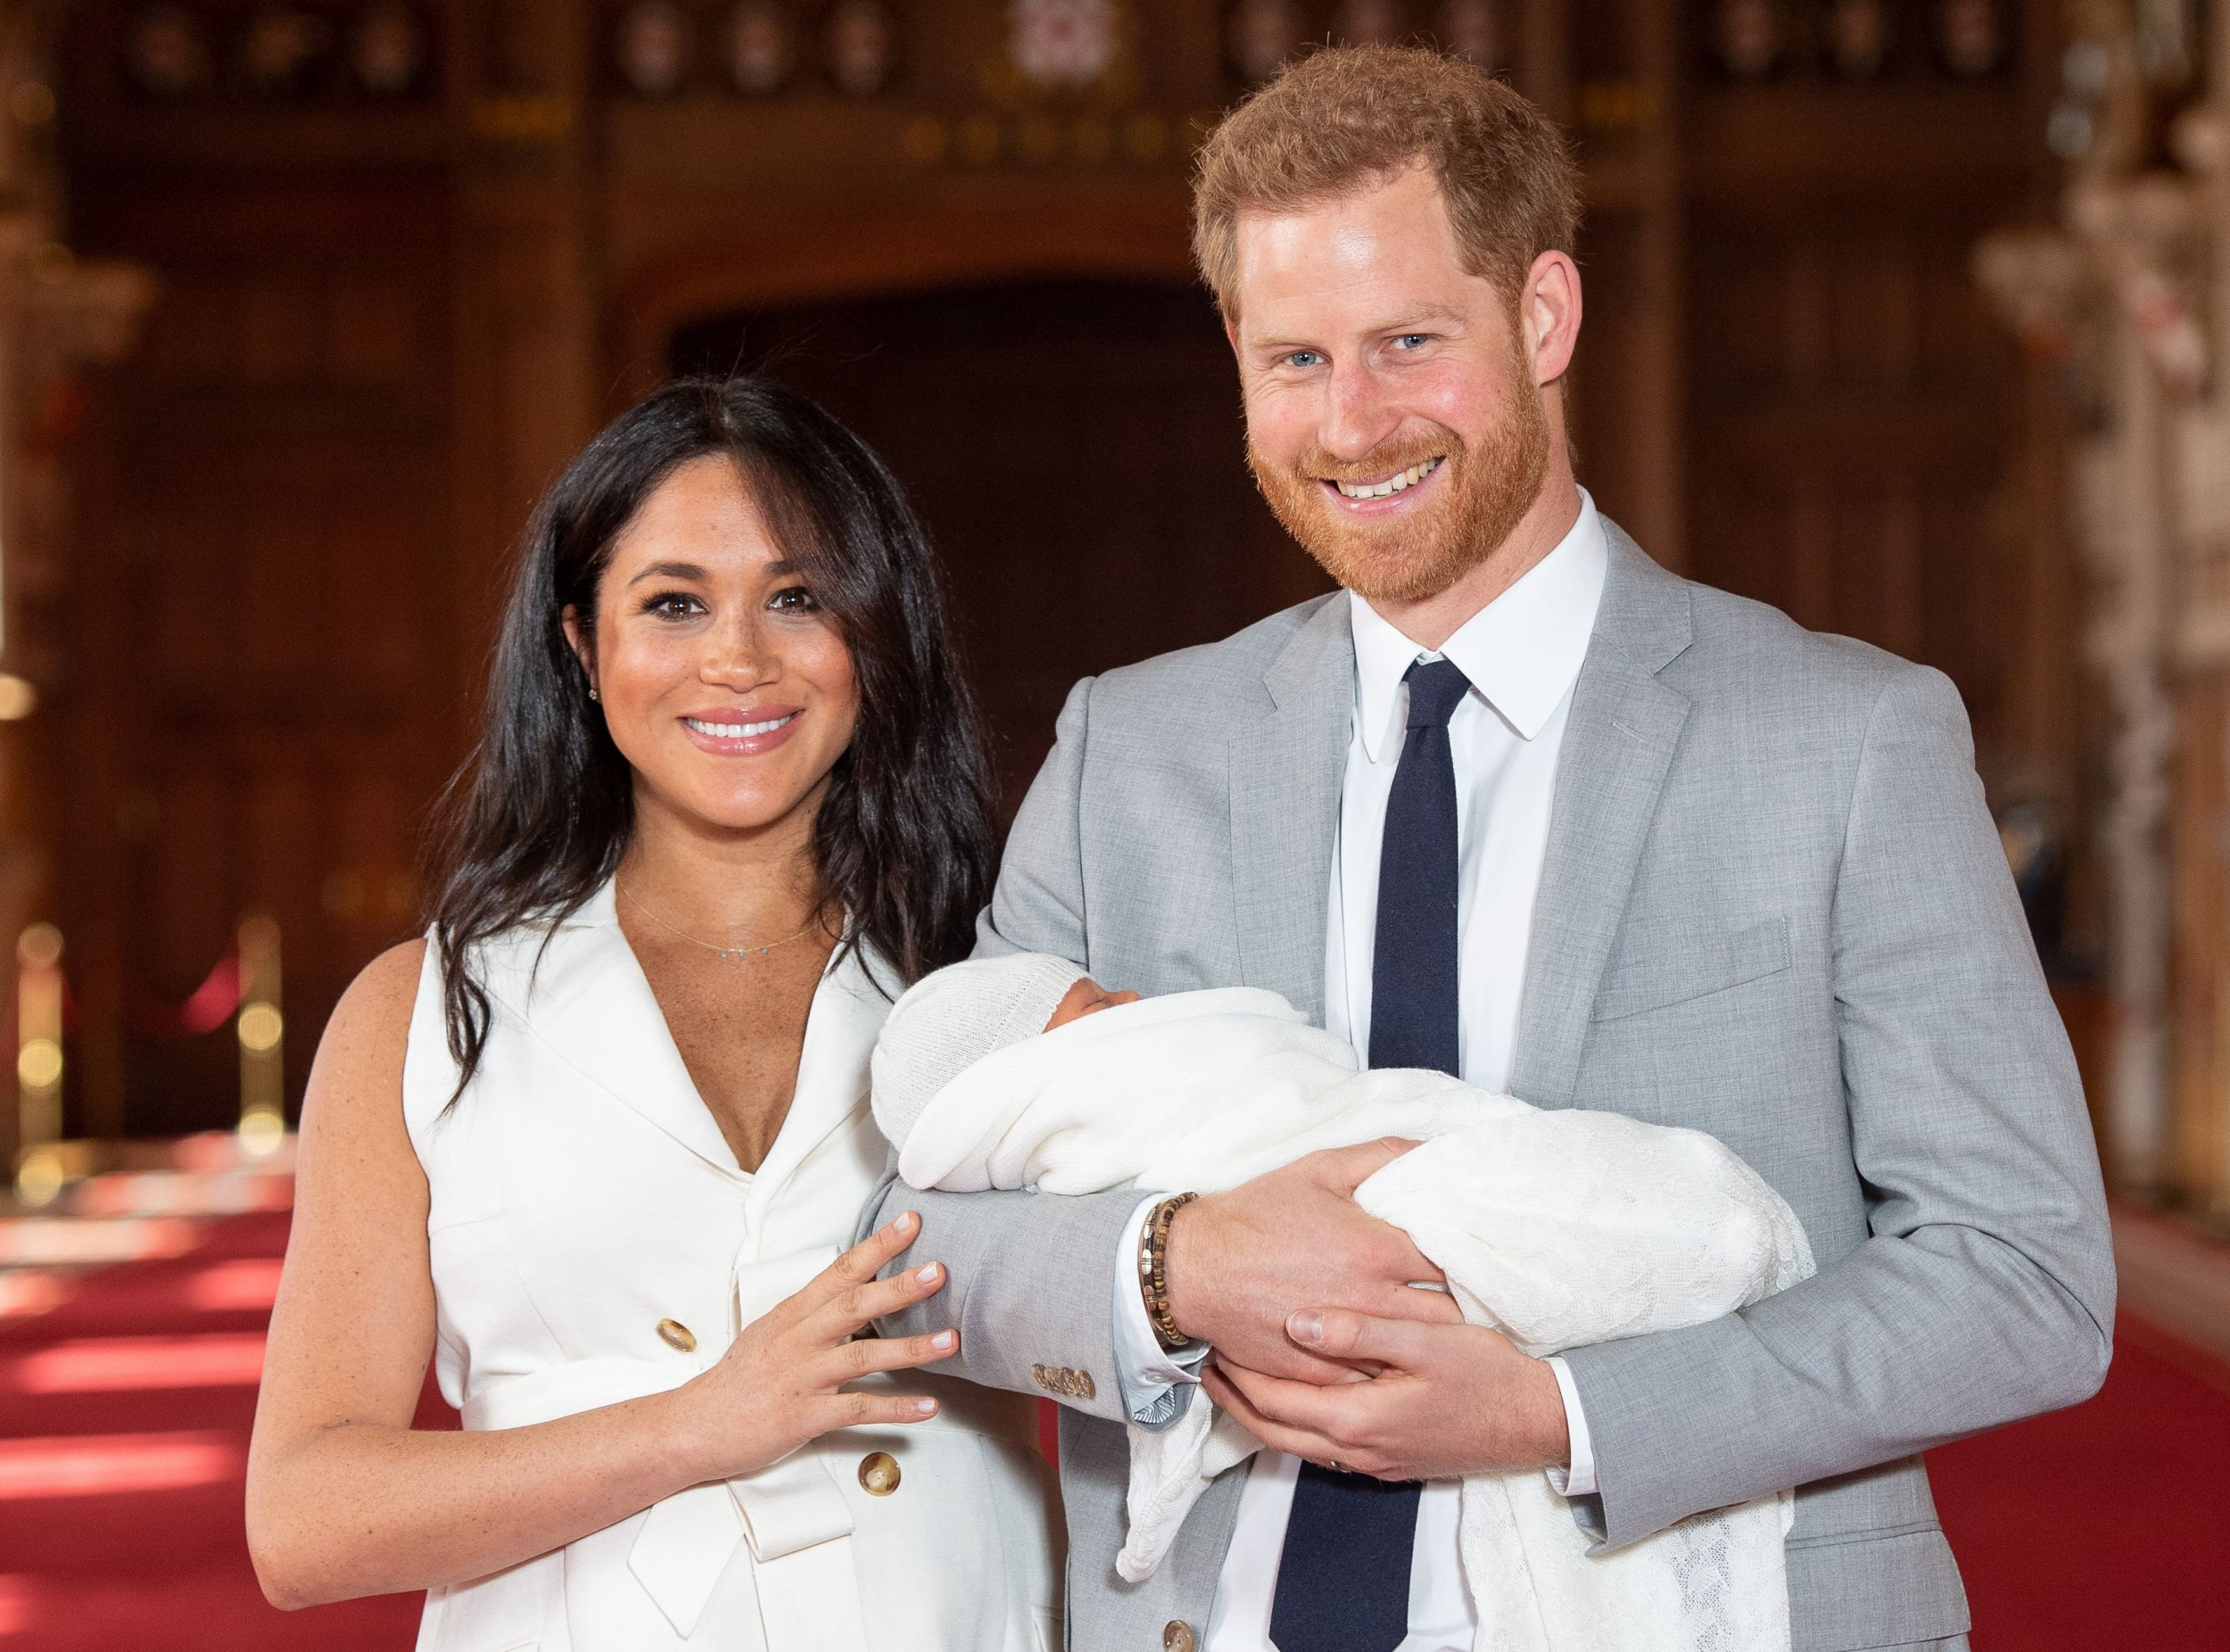 Archie is one of the biggest surprises in royal betting history